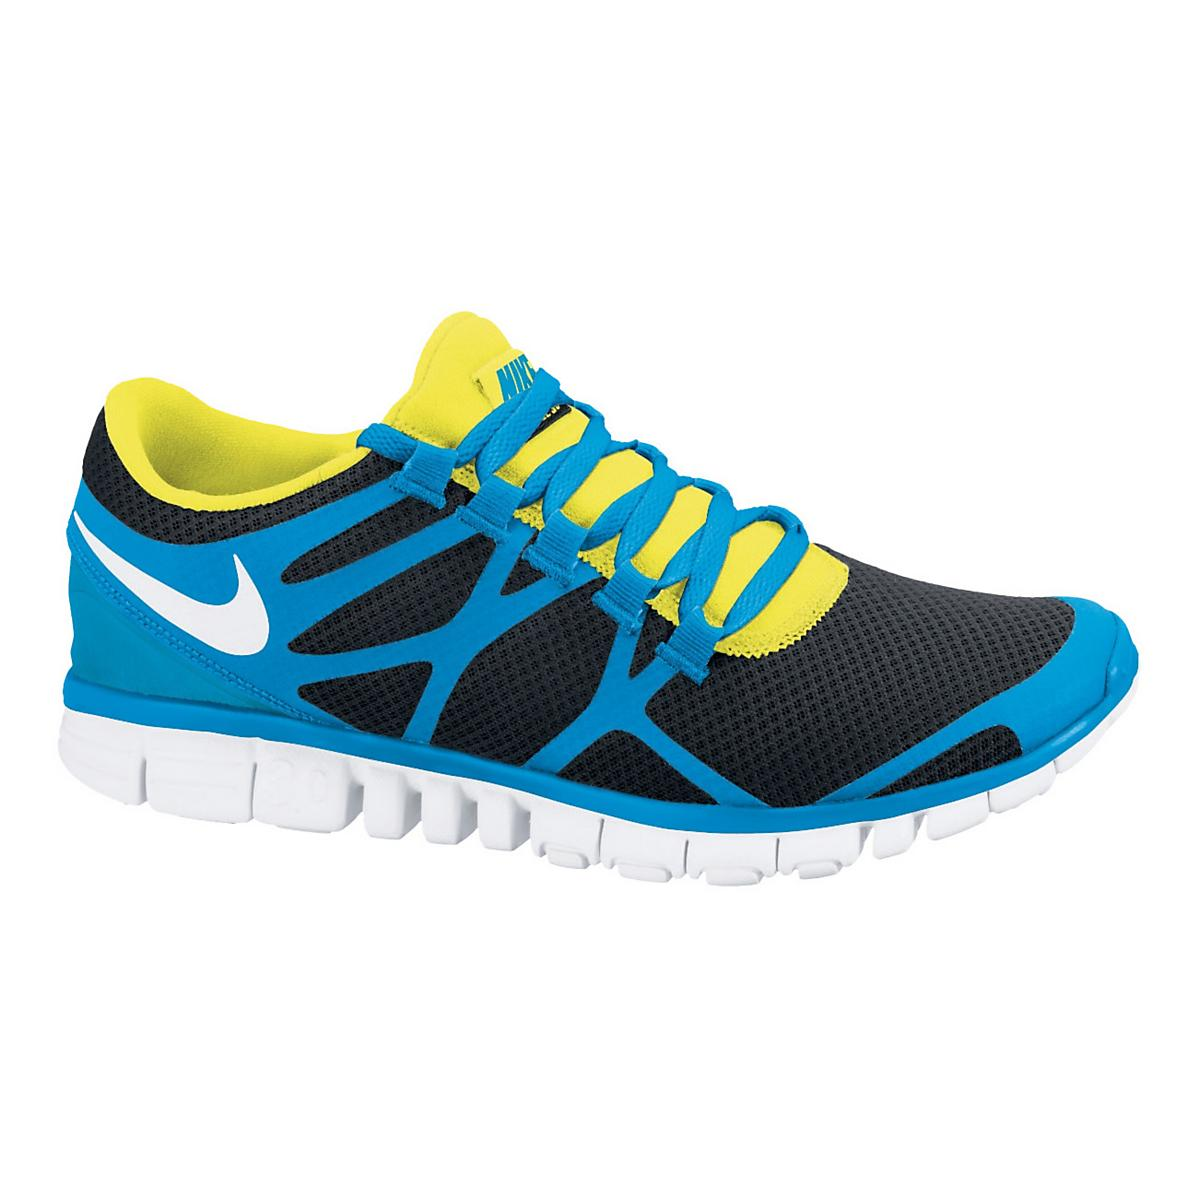 Nike Free Trainer 3.0 V3 Men's training Shoes Gray/Fluorescent